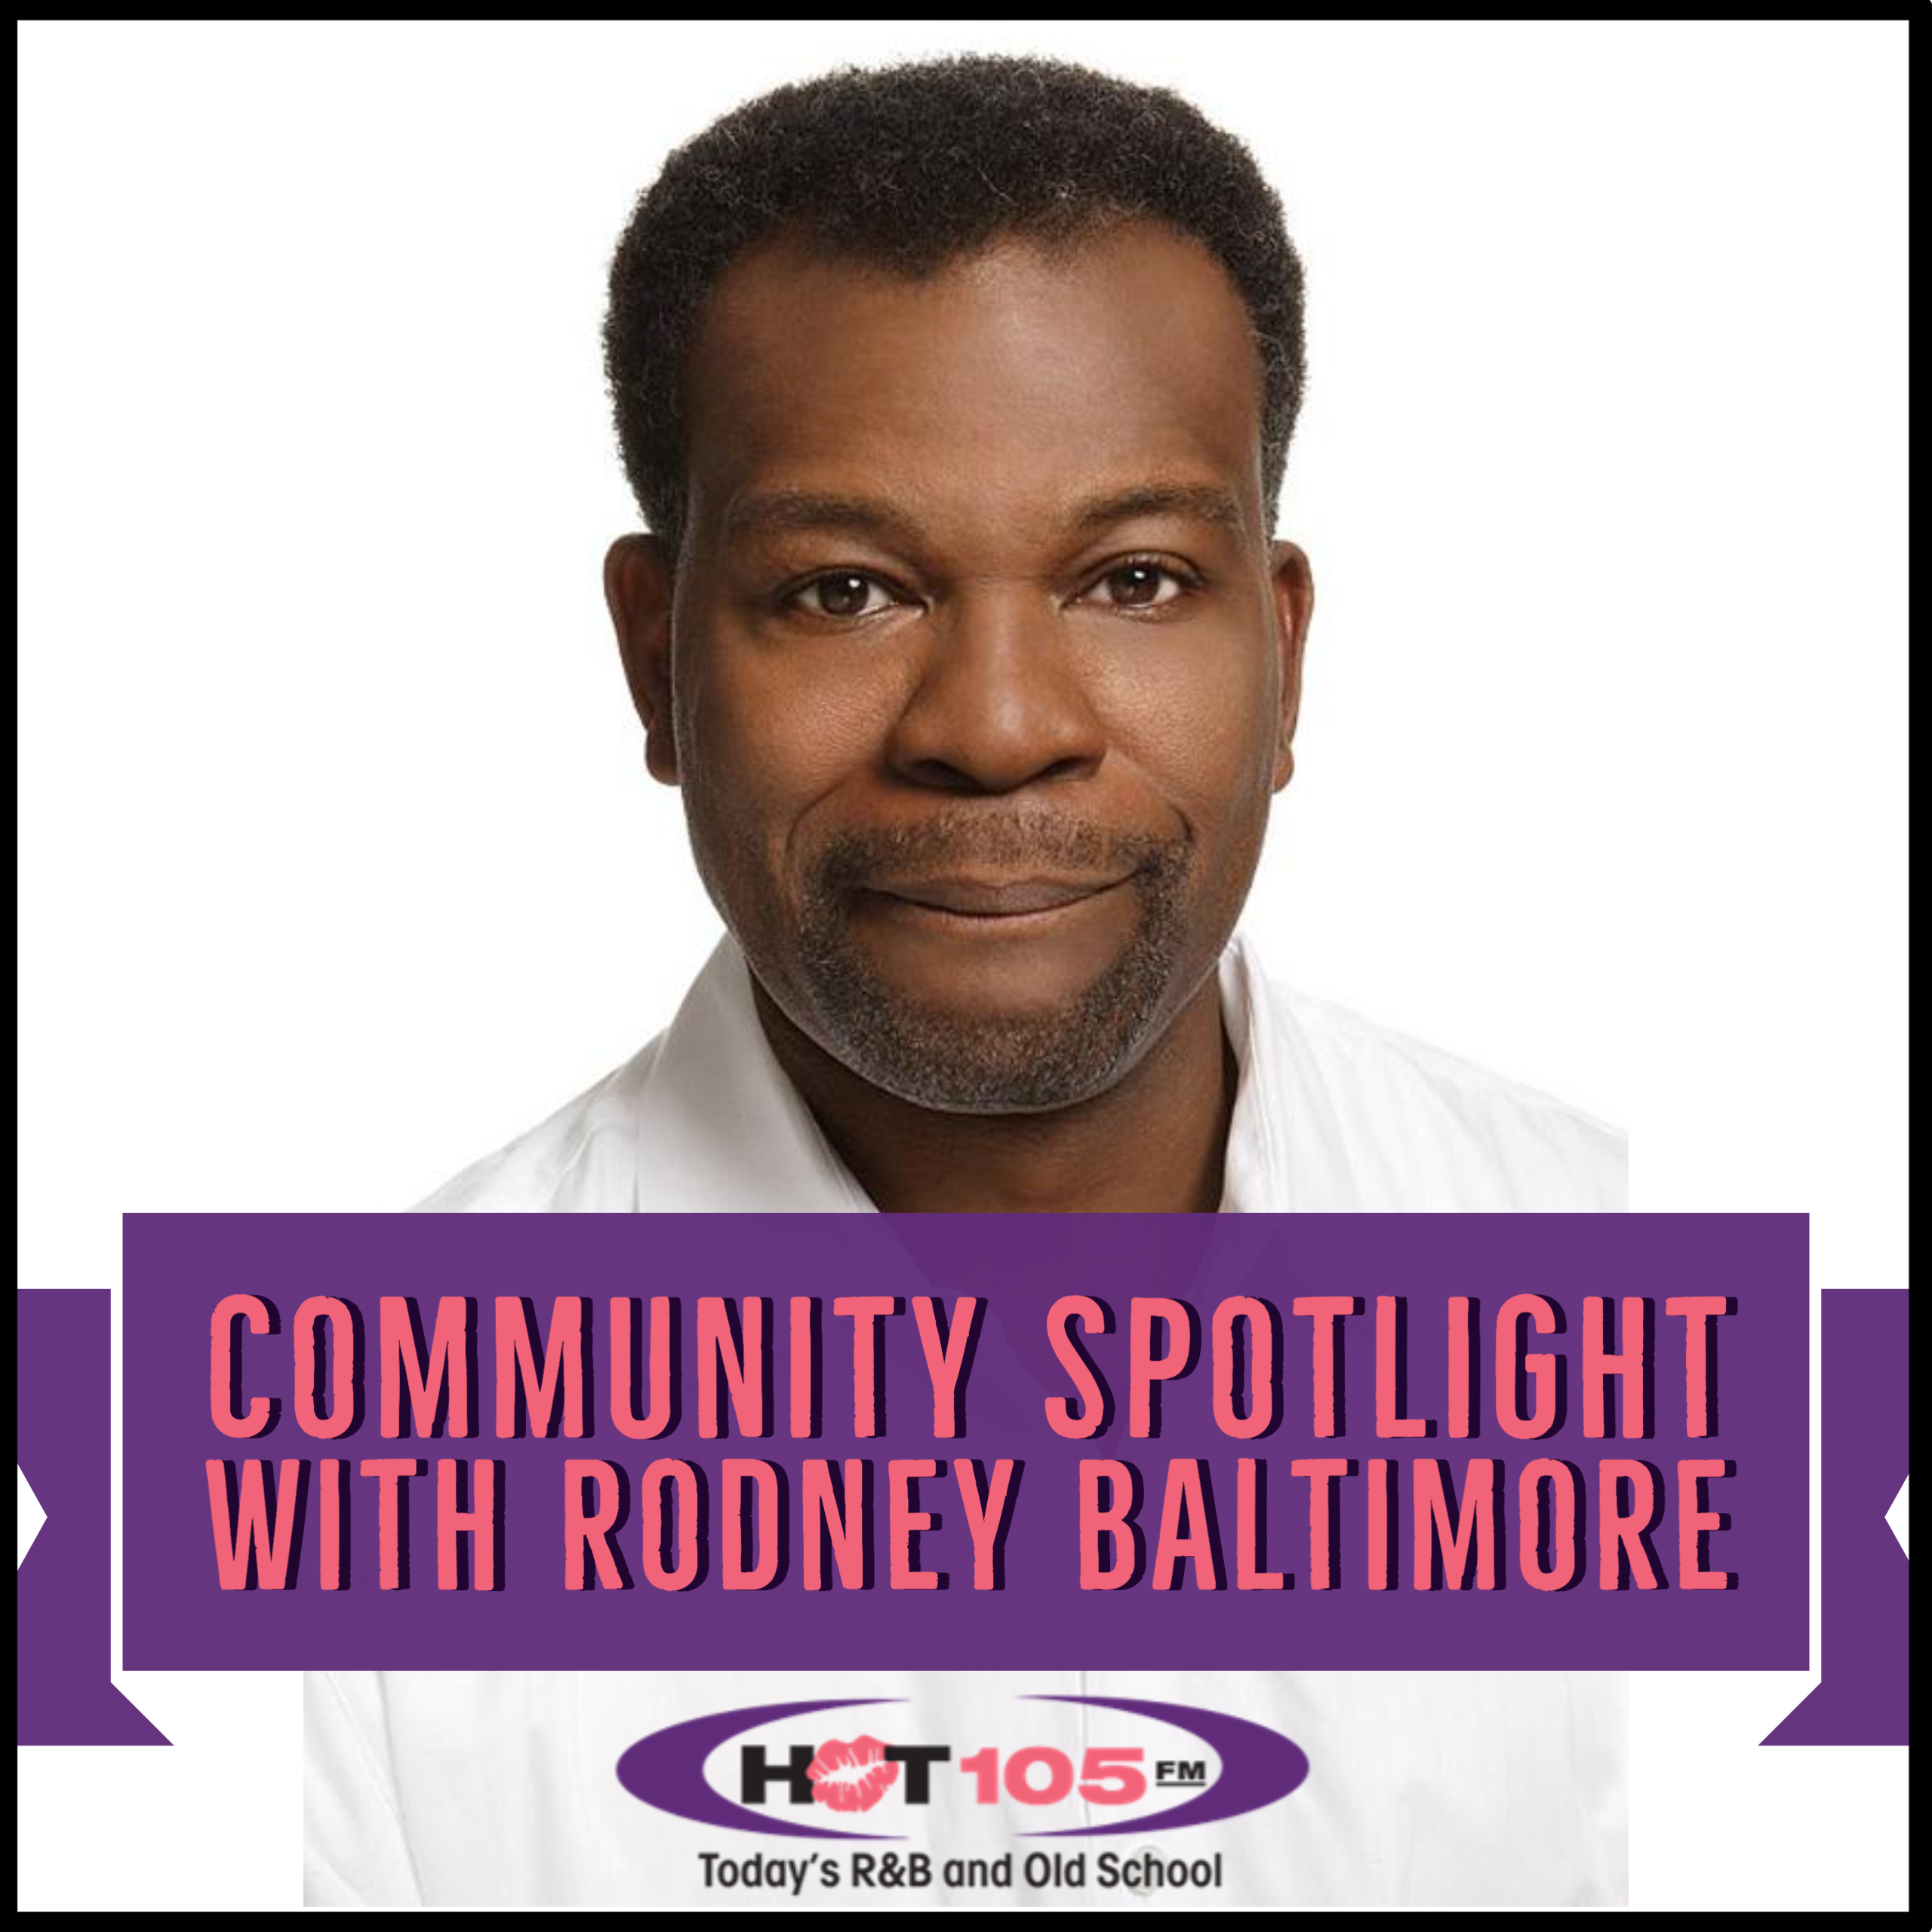 Community Spotlight with Rodney Baltimore